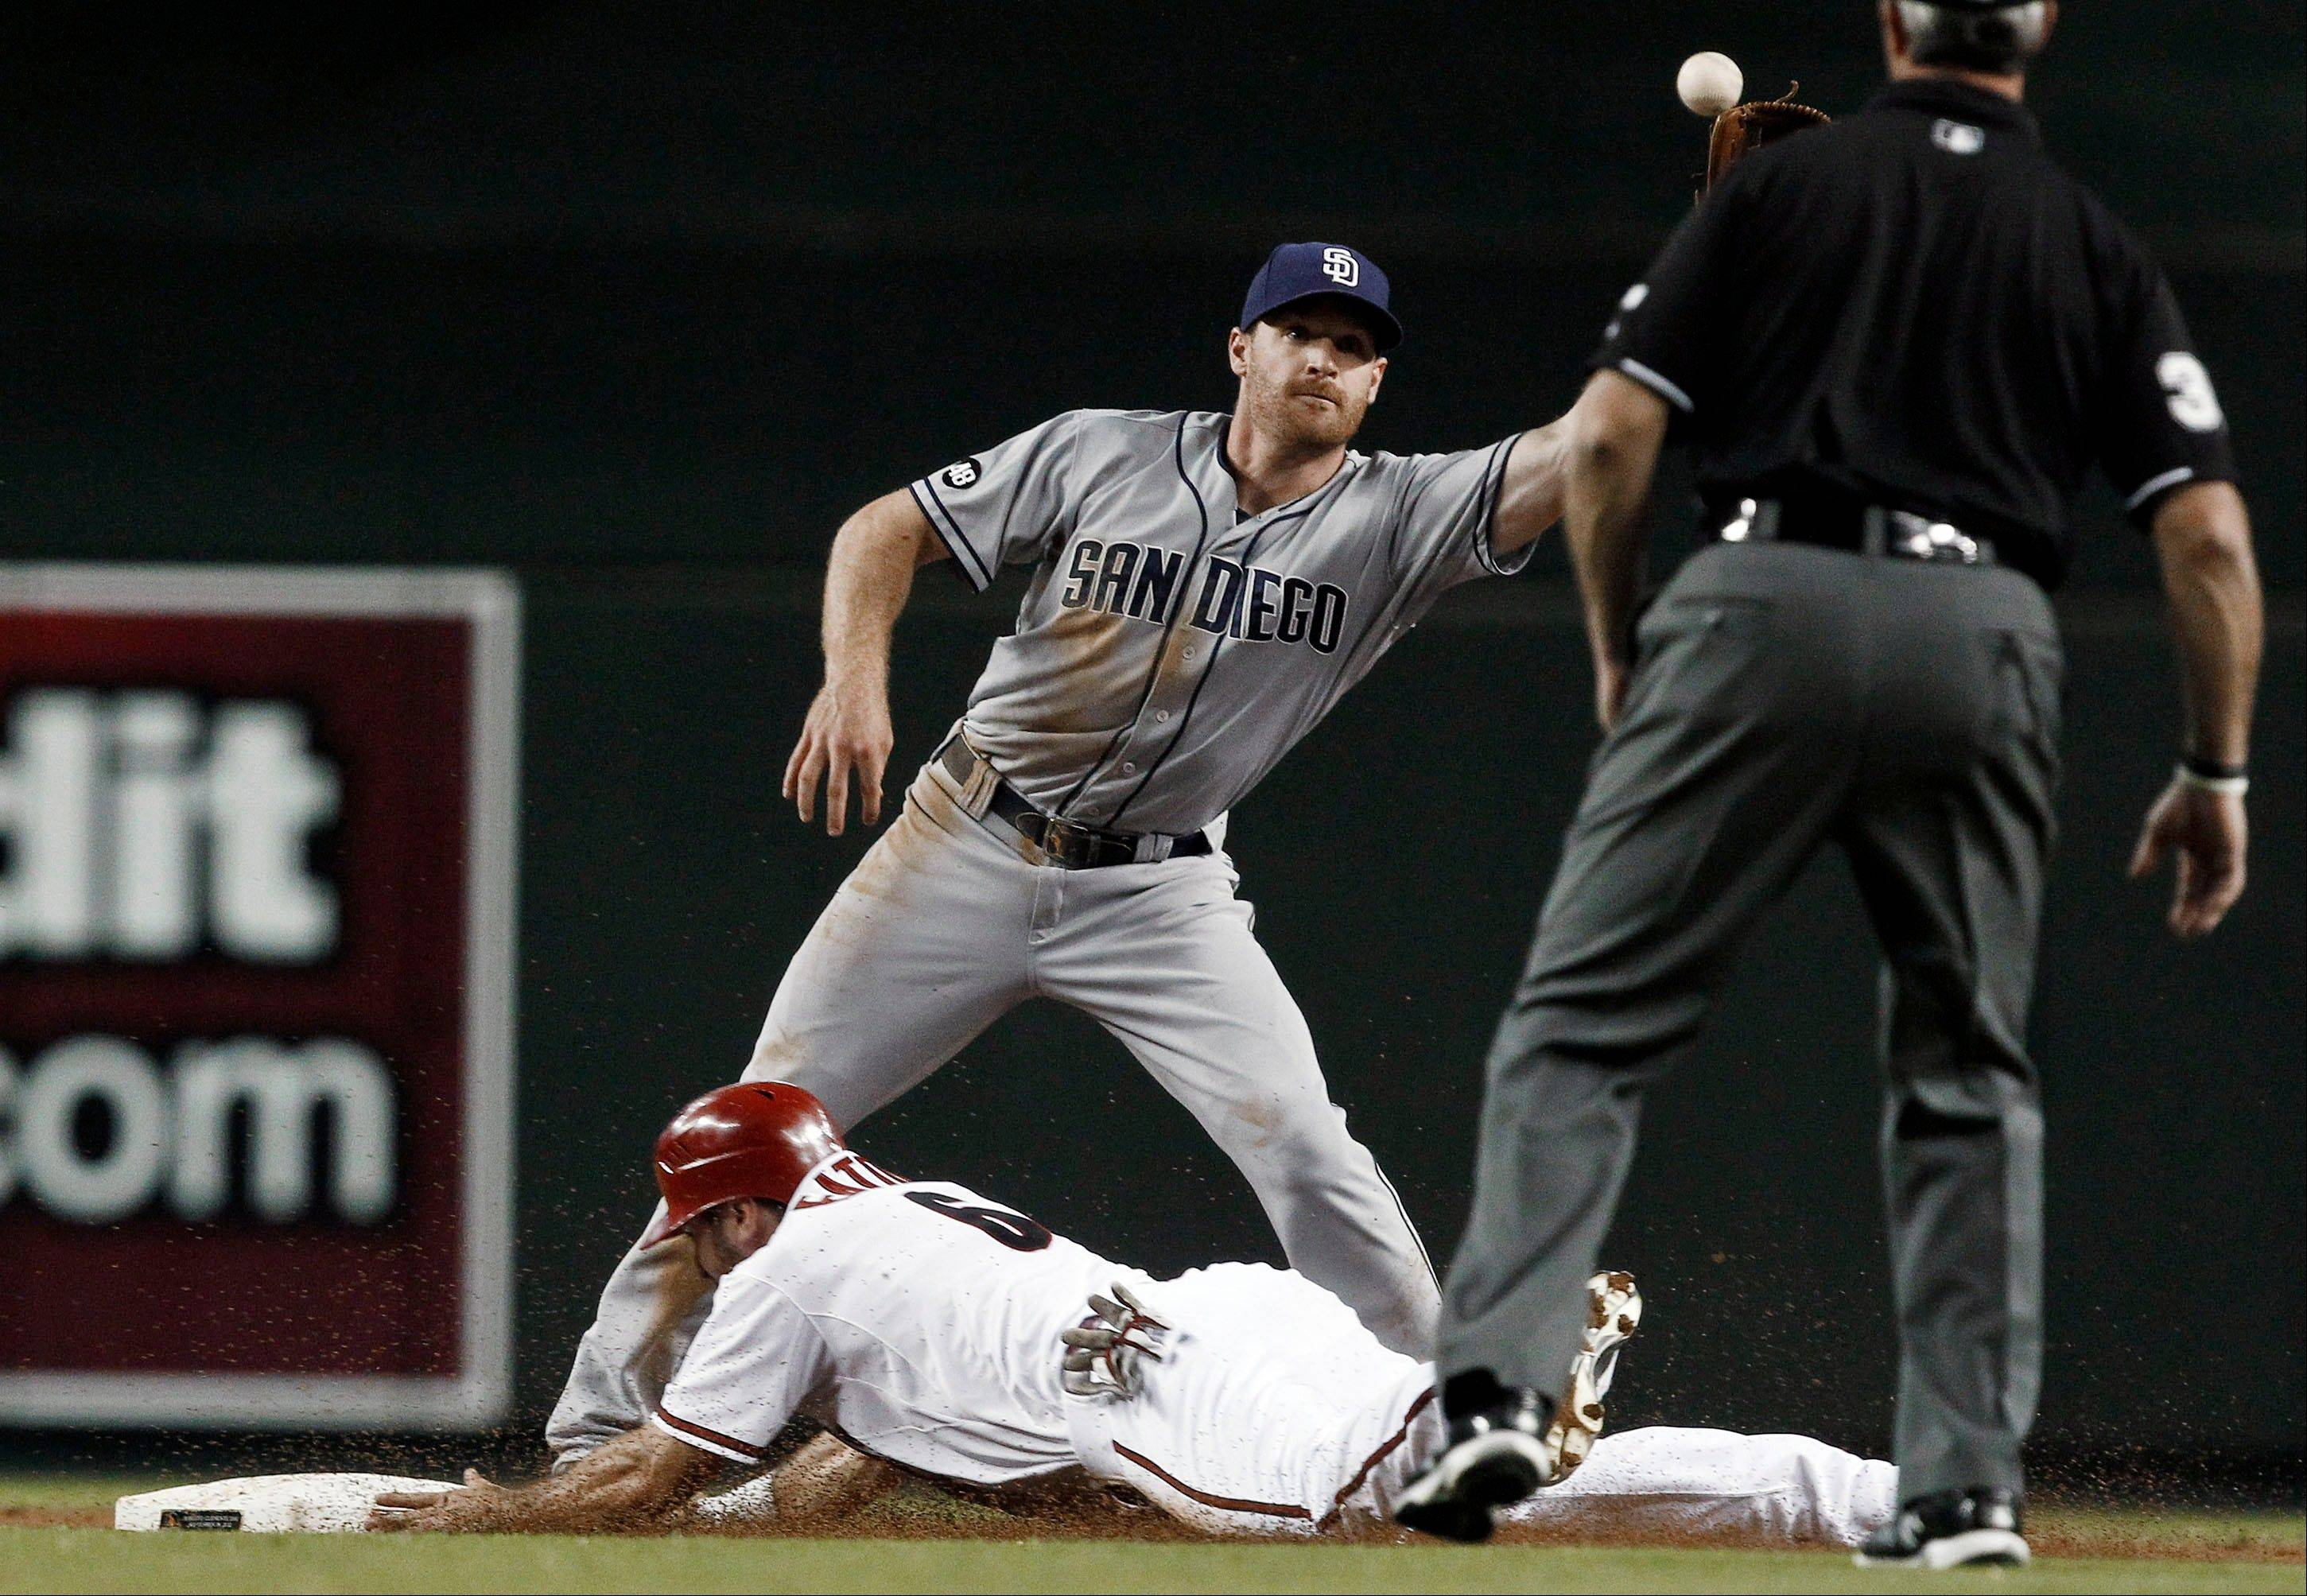 The Diamondbacks' Adam Eaton steals second base as San Diego's Logan Forsythe waits for a late throw during the first inning Tuesday in Phoenix.